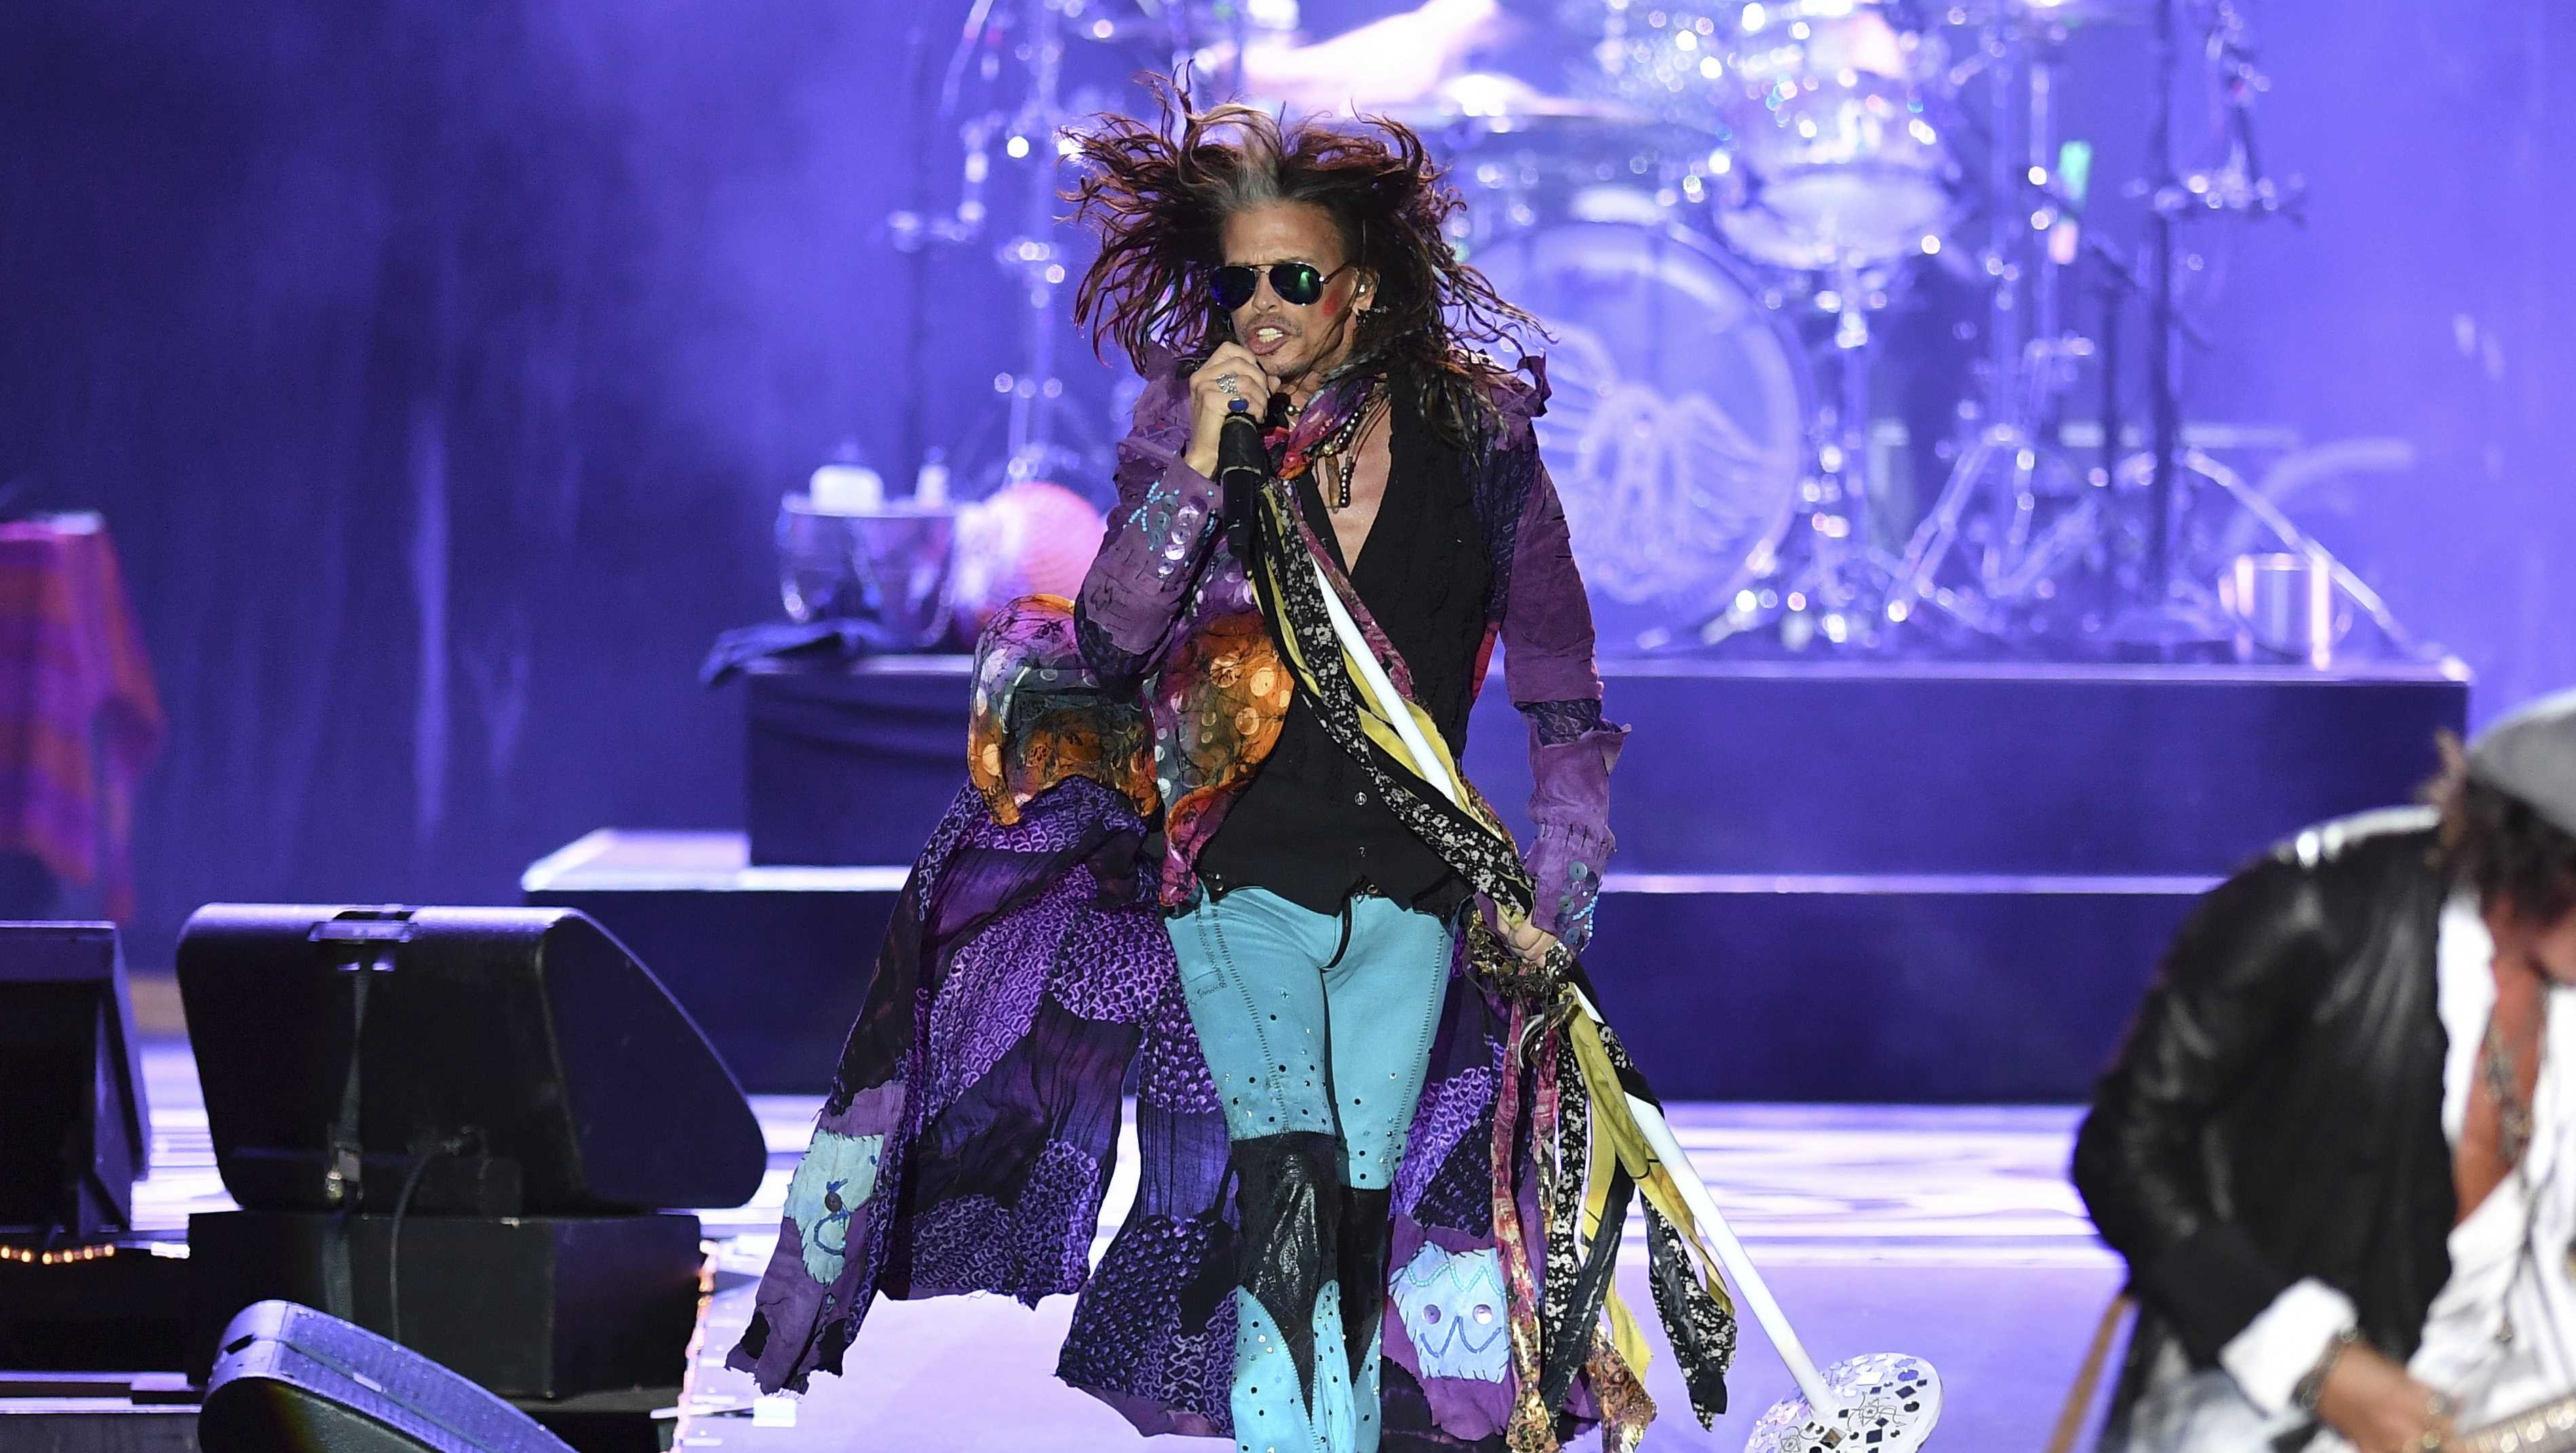 Steven Tyler performs during a concert at the Koenigsplatz in Munich, Germany, Friday, May 26, 2017.